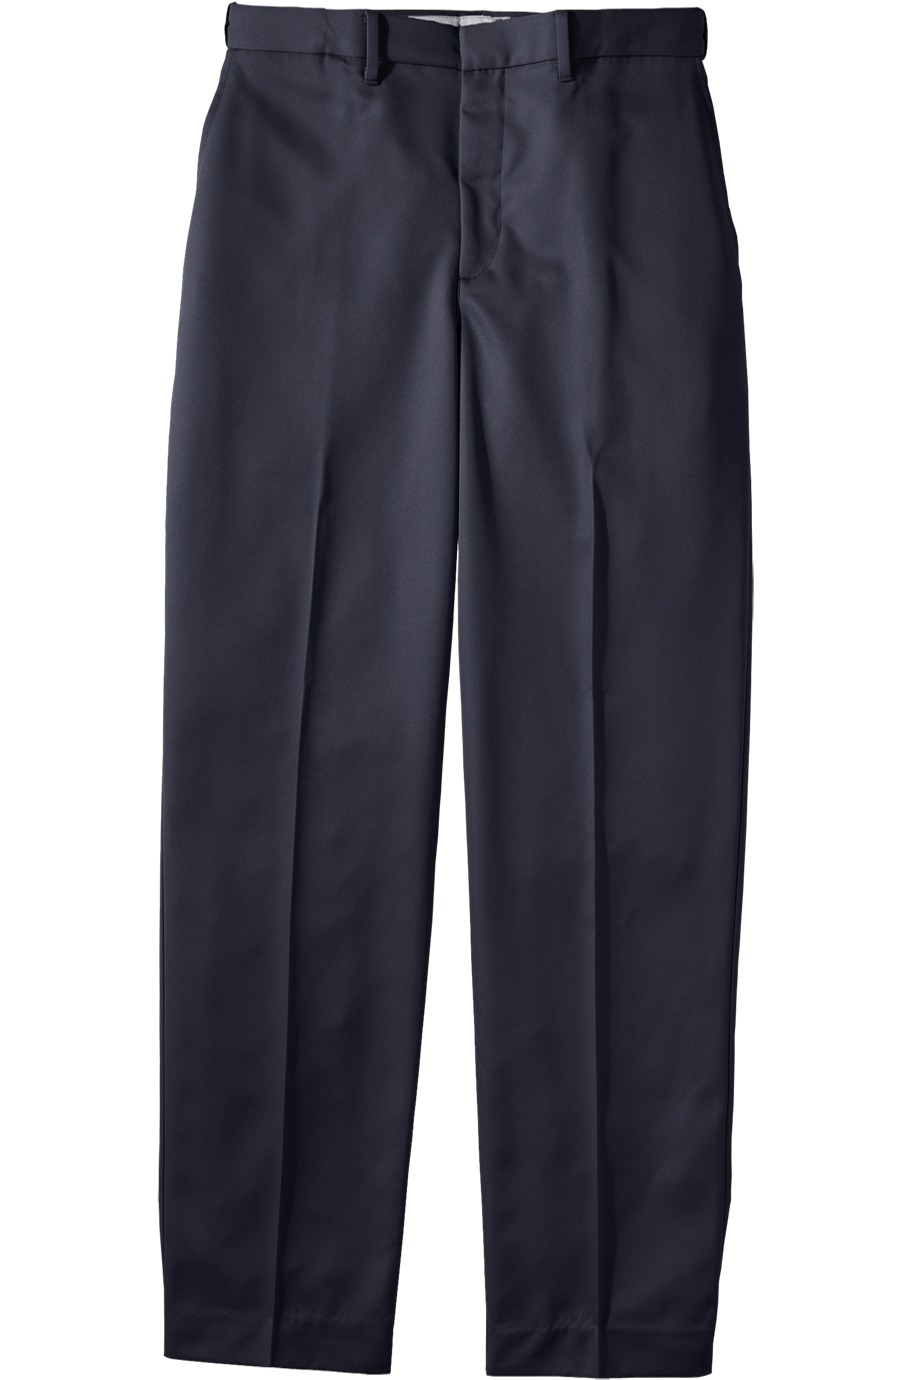 Edwards Garment 2574 - Men's Microfiber Flat Front Pant $28.45 ...